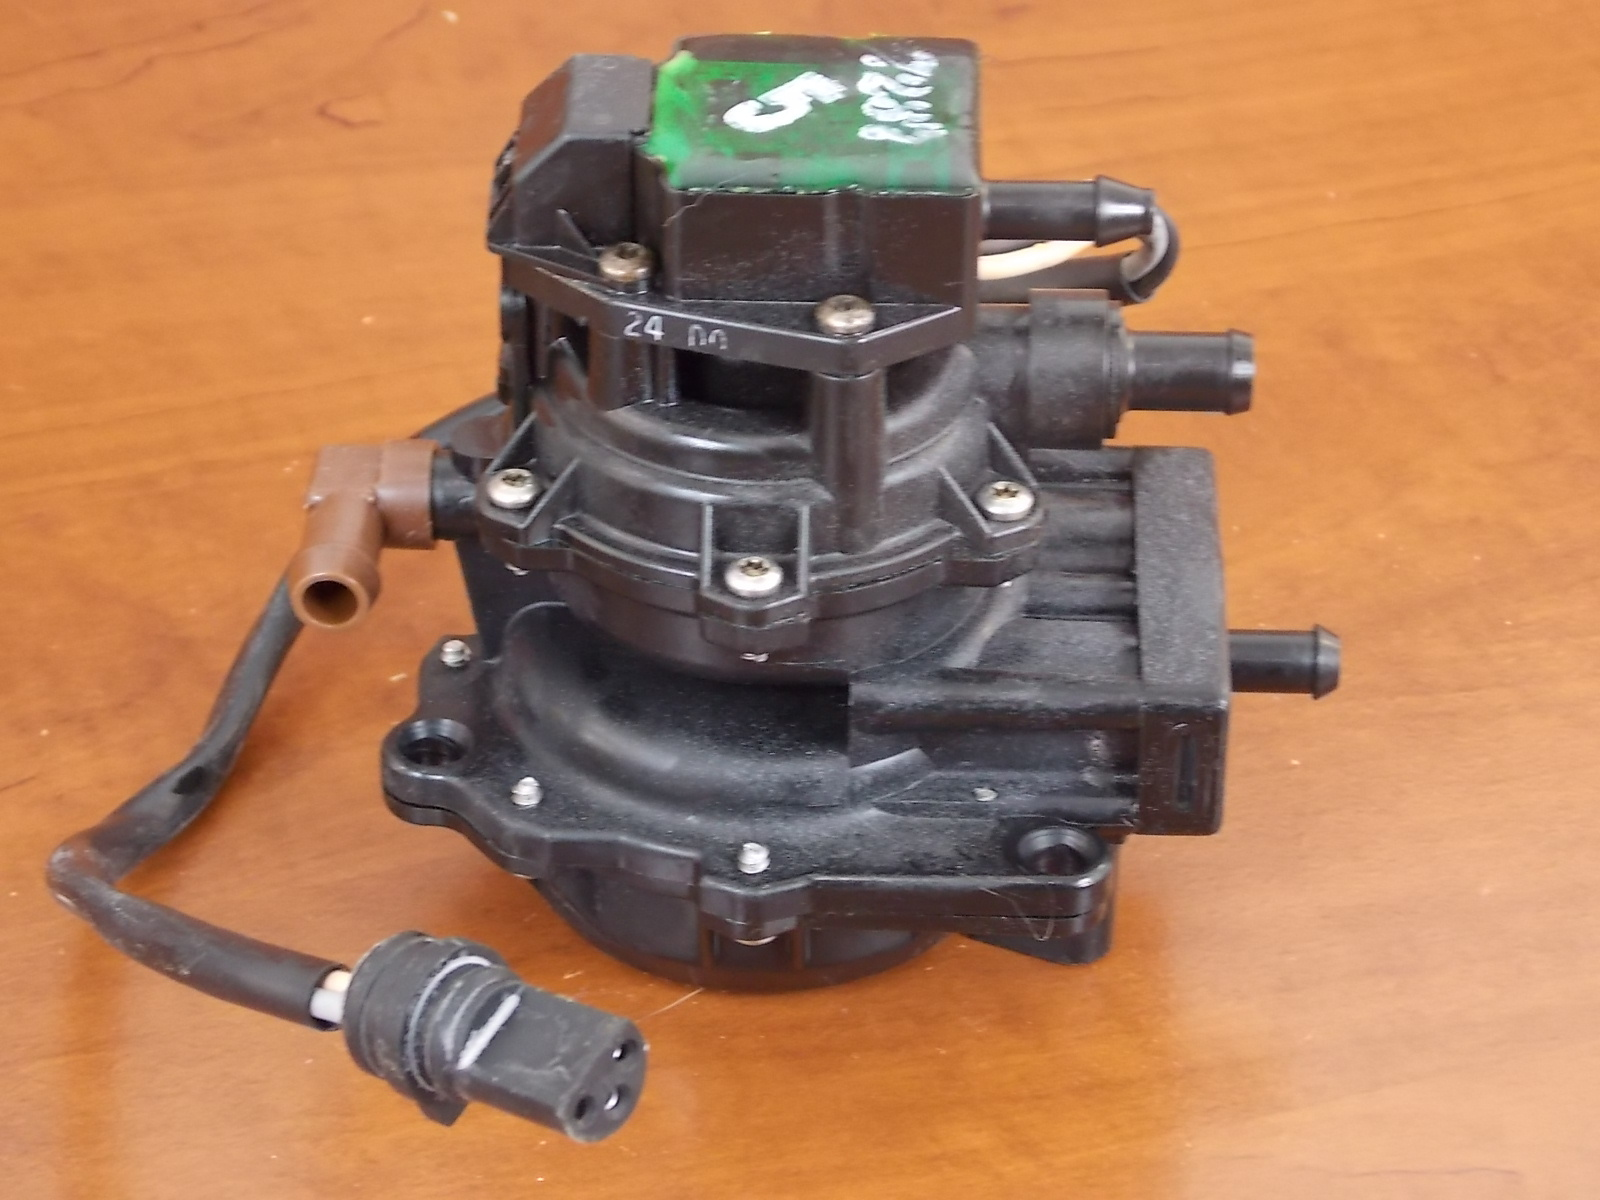 50 johnson outboard motor diagram xlr wiring microphone rebuilt evinrude 3 wire vro pump 1986 1991 40 45